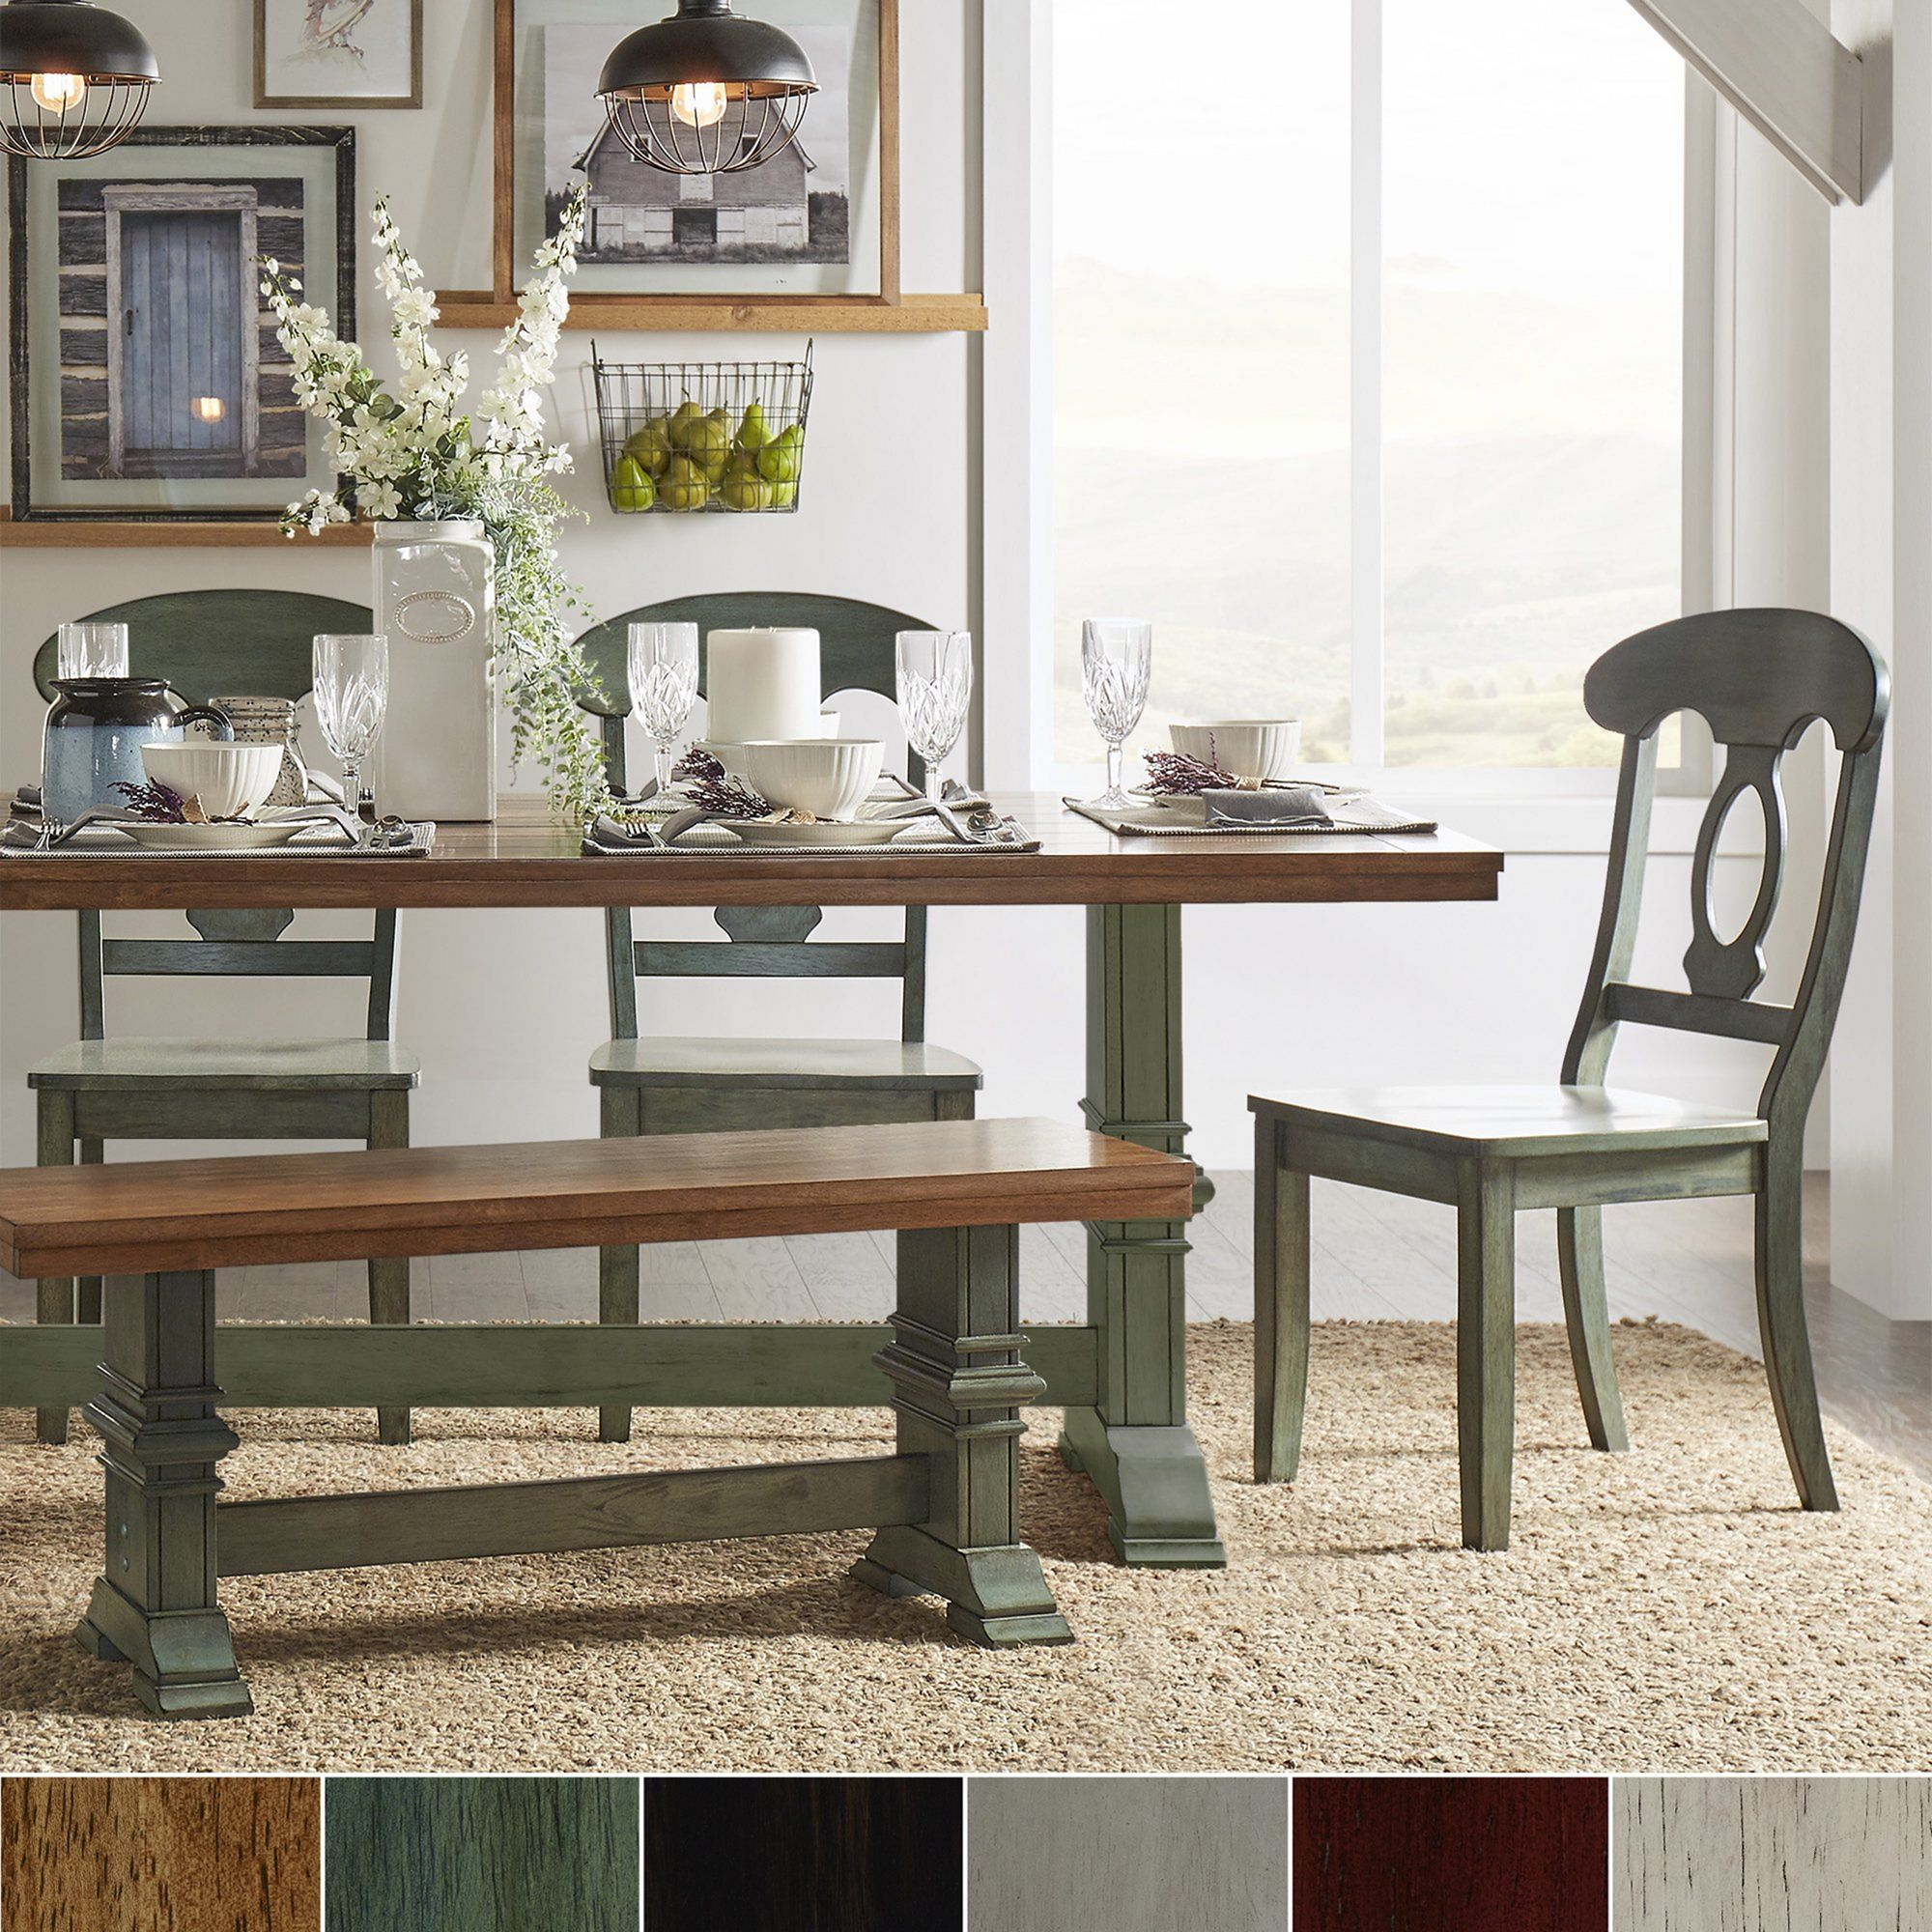 38 Charming Farmhouse Dining Table Designs To Enjoy Your Dinner